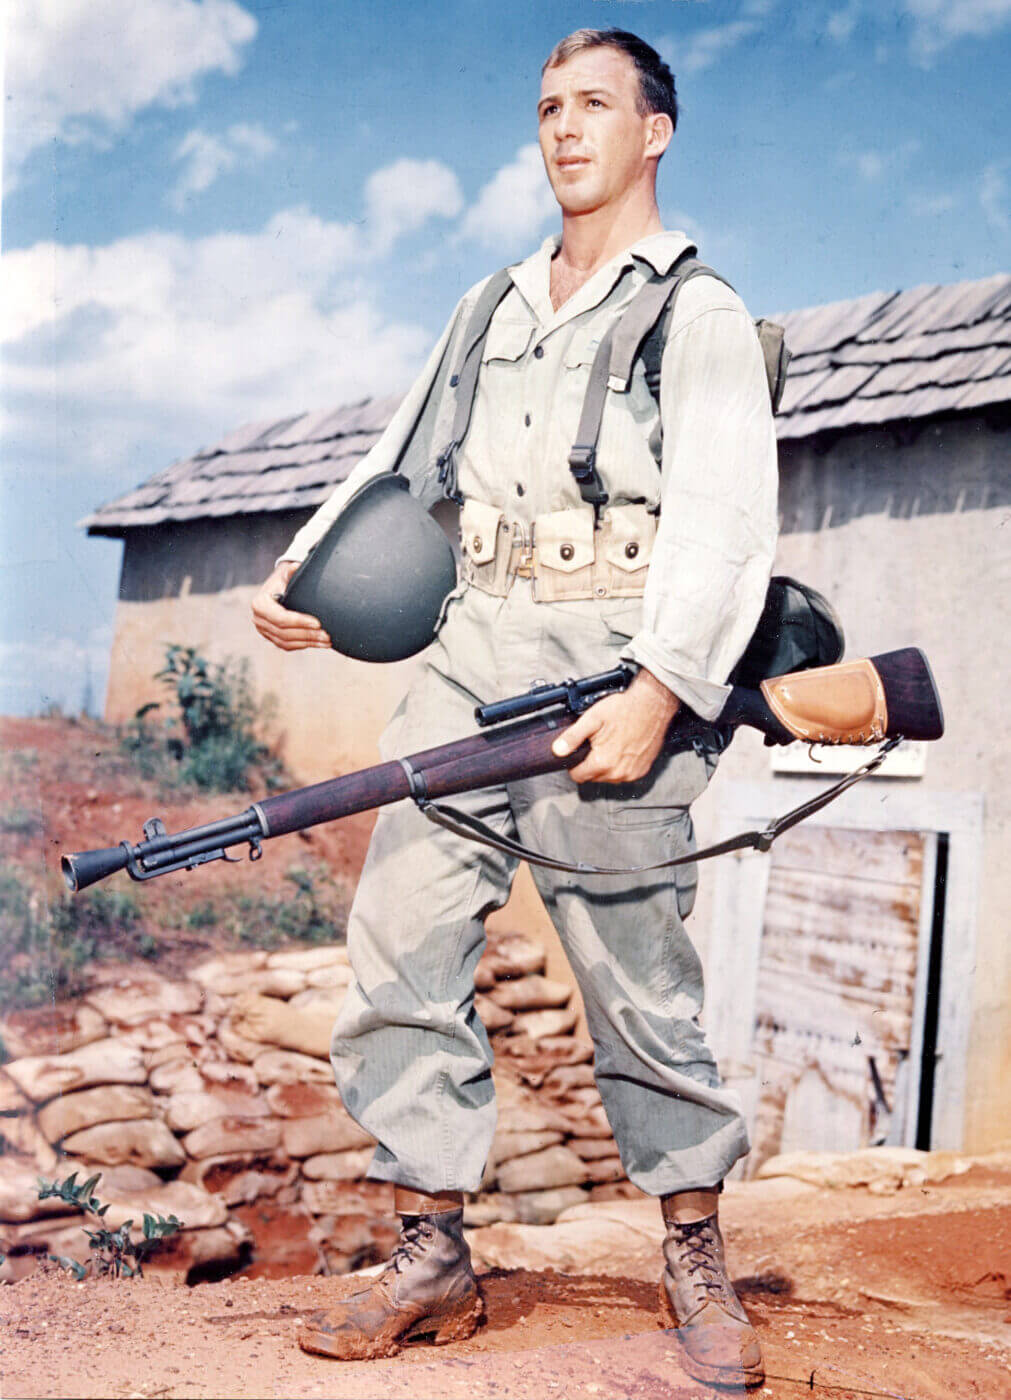 US sniper with M1C rifle in WWII